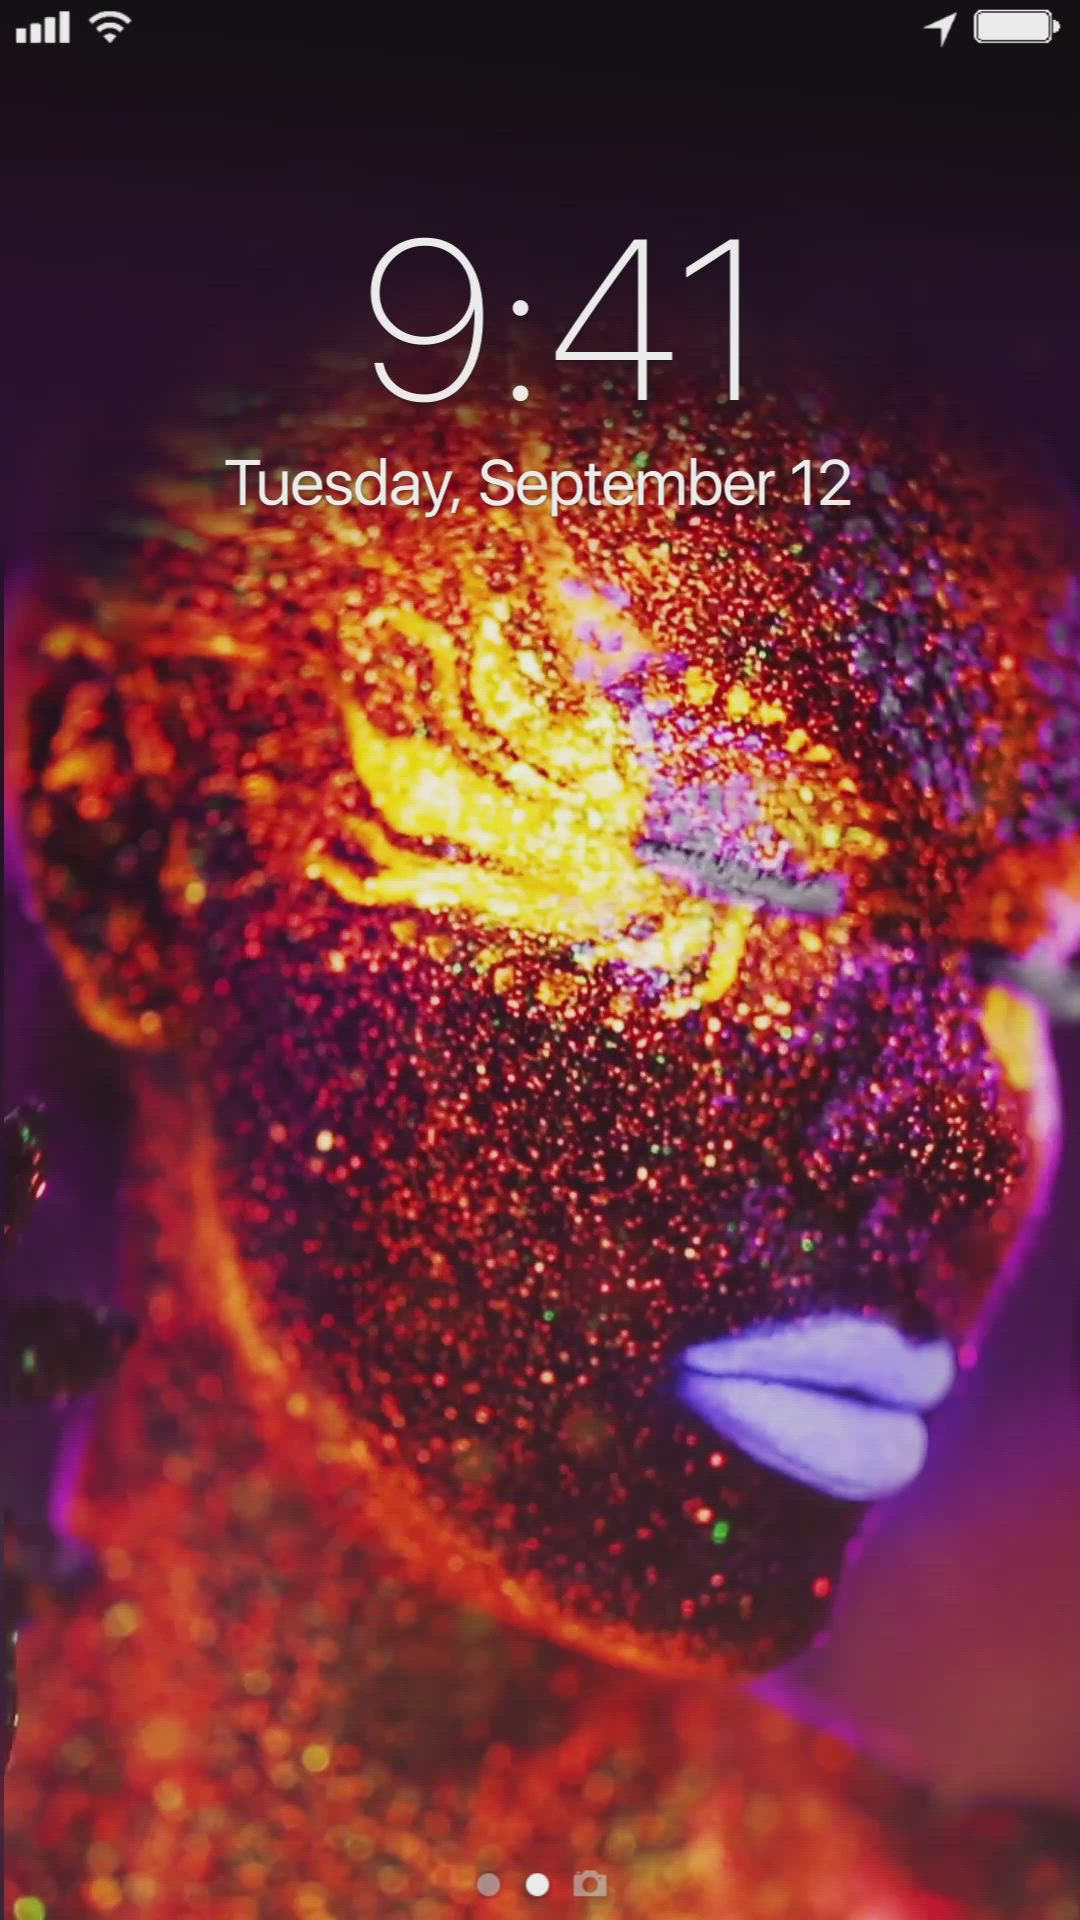 Incredible Live Wallpapers For Your Iphone Video Iphone Wallpaper Video Live Wallpaper Iphone Apple Wallpaper Iphone